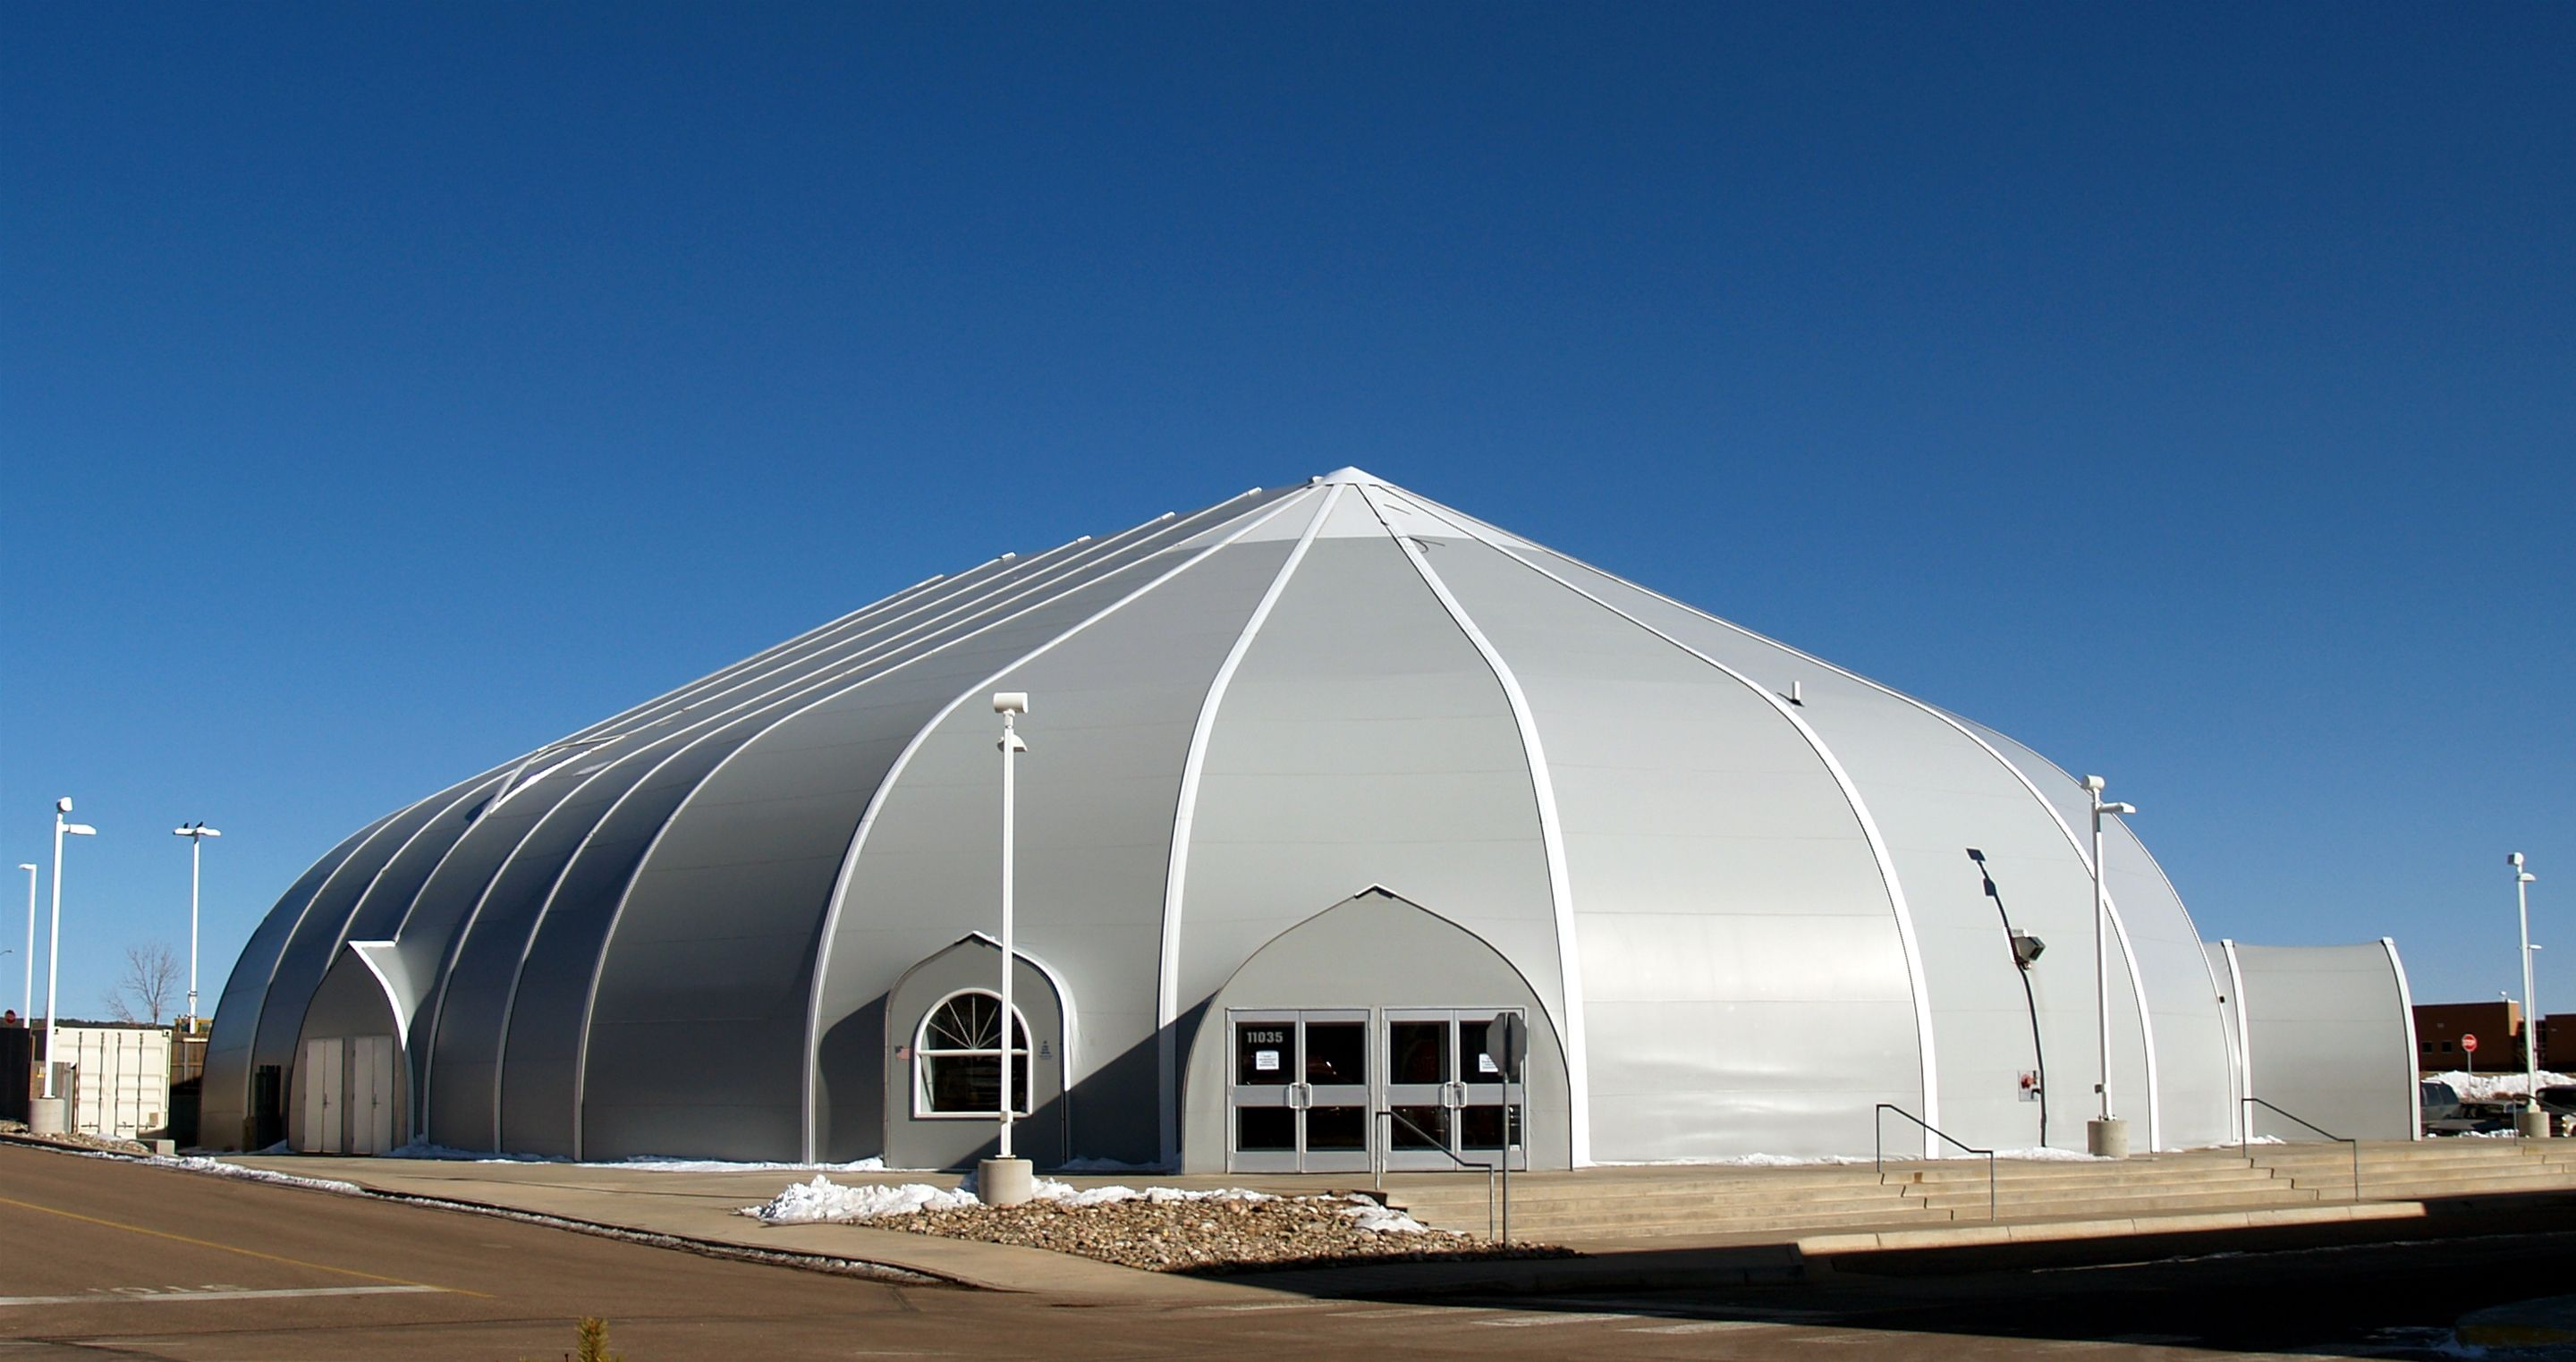 The Tent at New Life Church Colorado Springs CO. & The Tent at New Life Church Colorado Springs CO. | Family ...